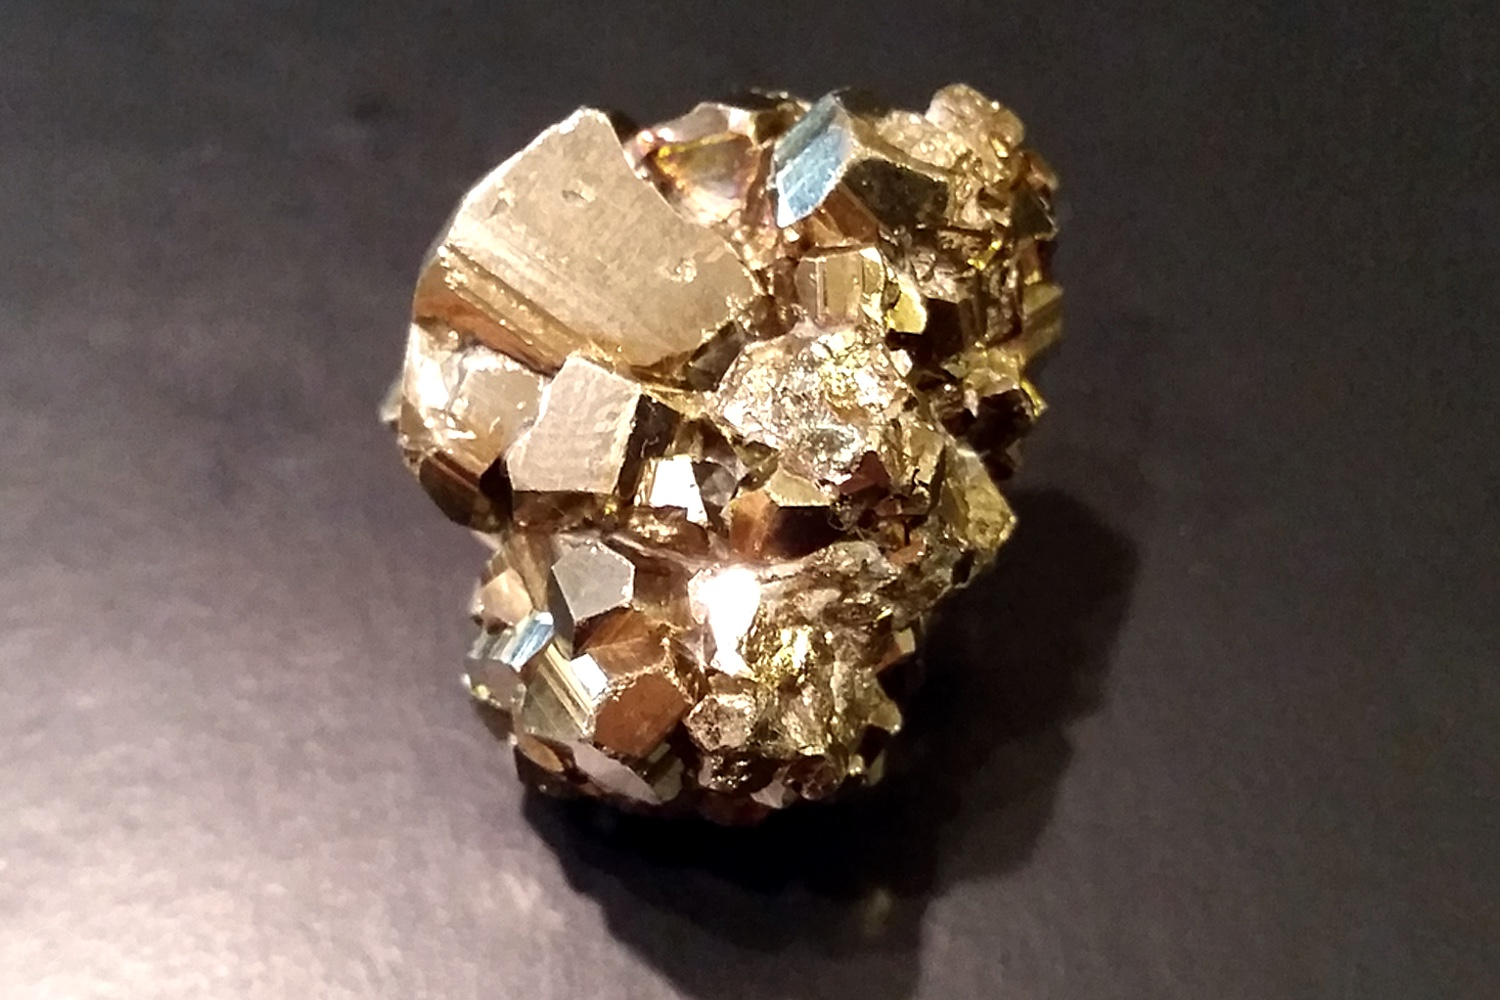 My Pyrite On My Desk